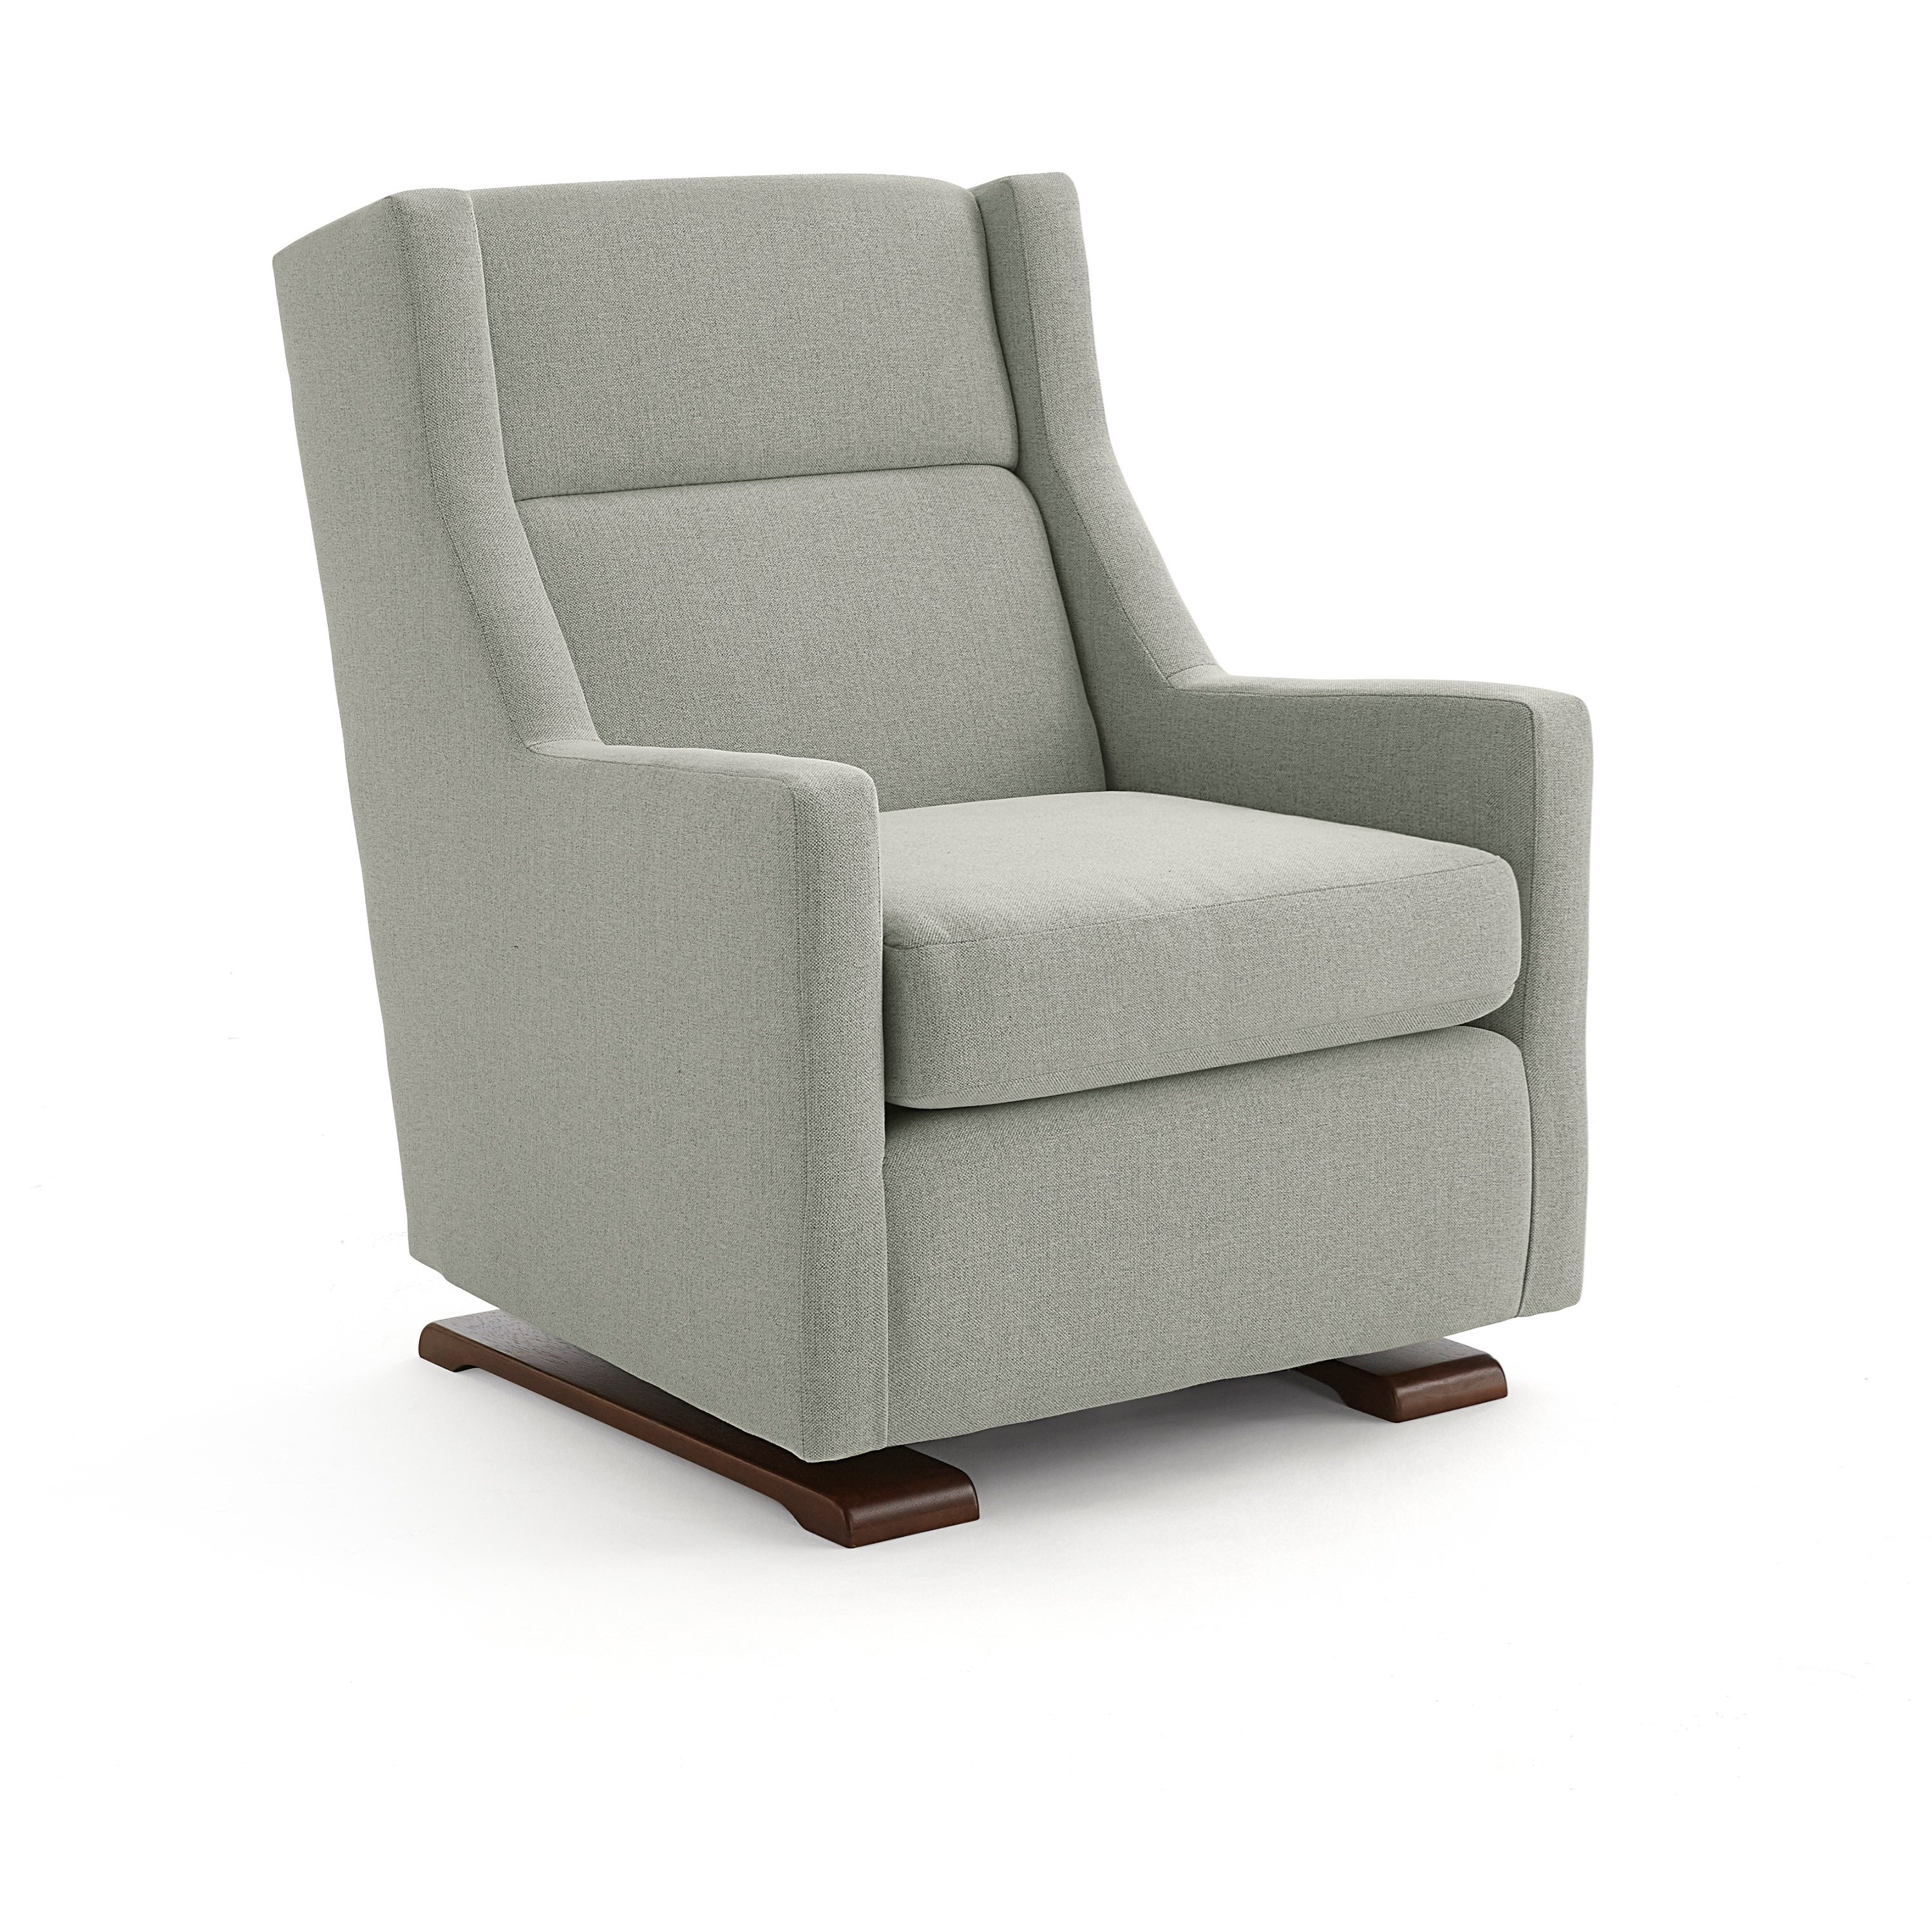 Best Home Furnishings Mandini Casual Swivel Gliding Chair